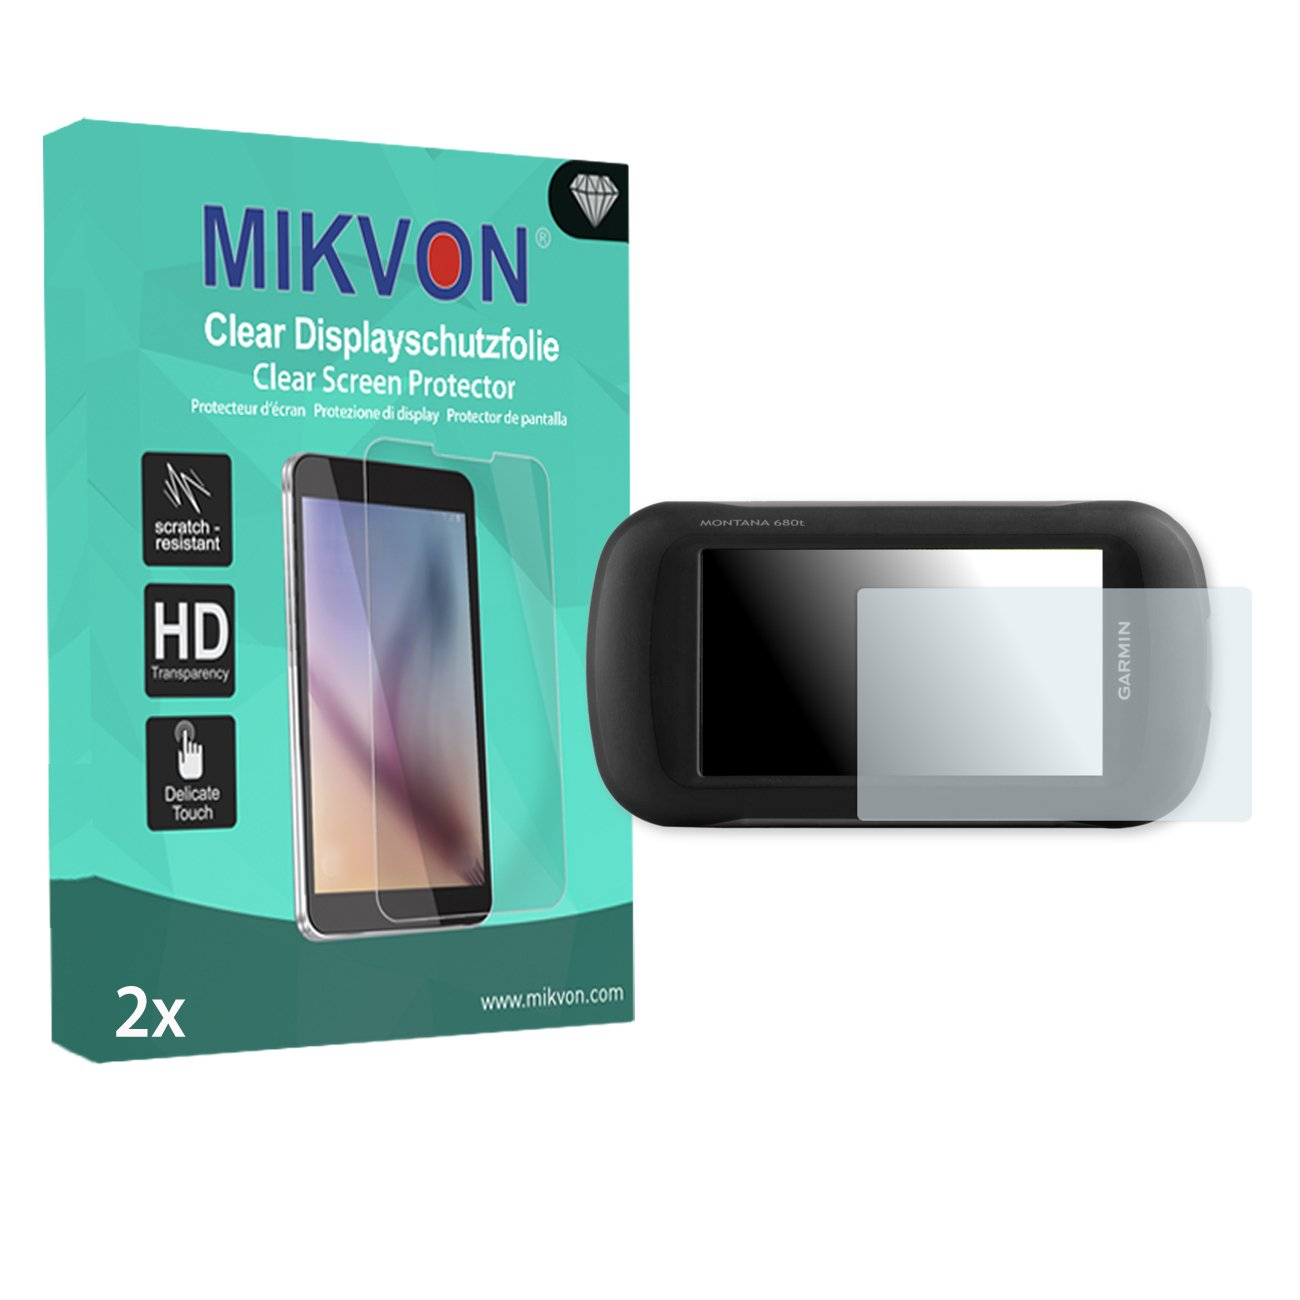 Amazon.com: MIKVON 2X Clear Screen Protector for Garmin Montana 680t - Retail Package with Accessories: Electronics